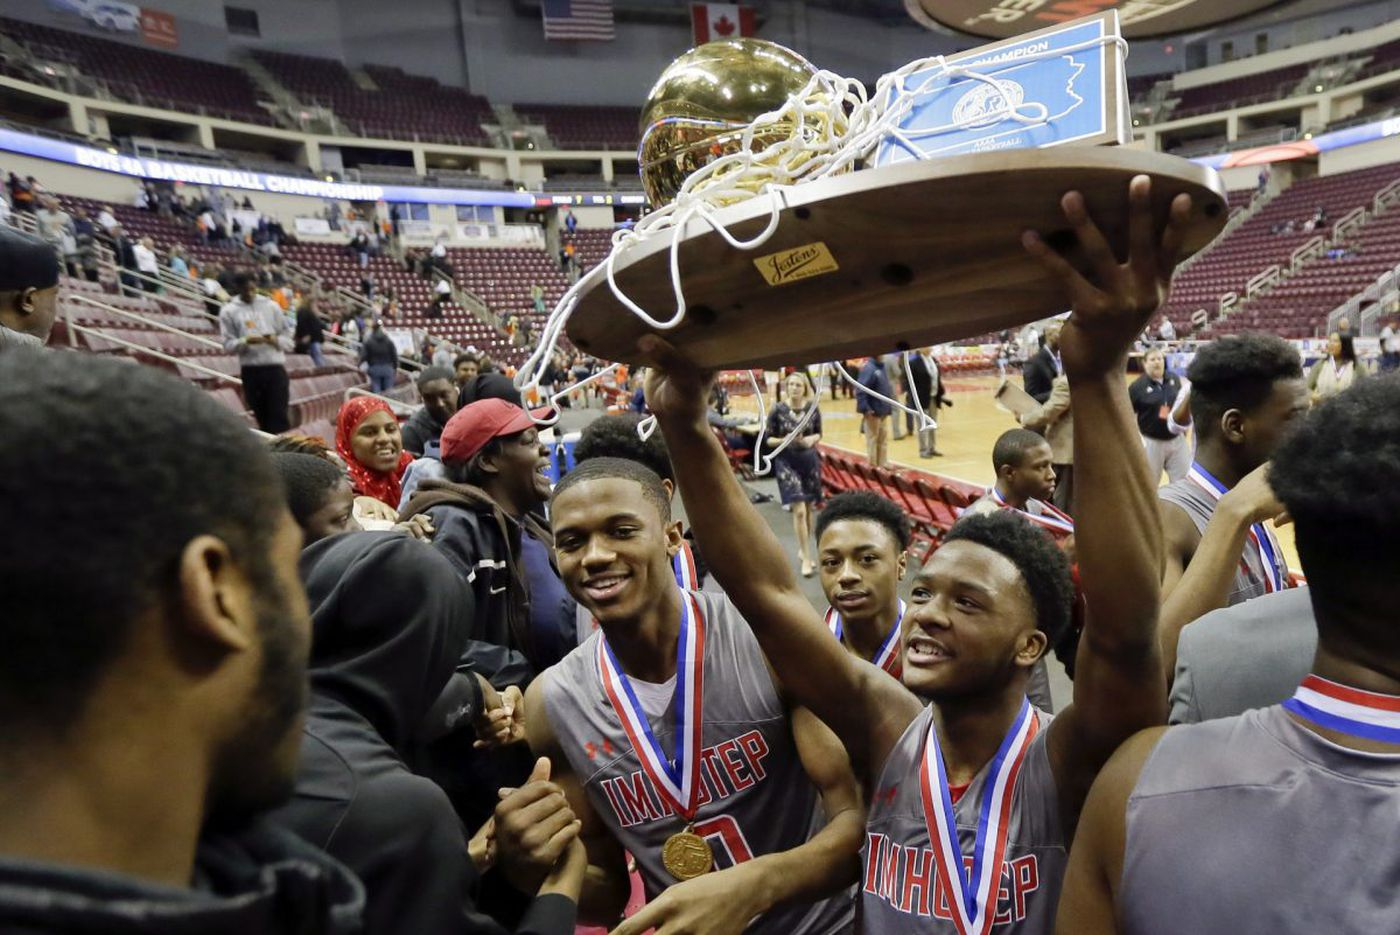 Imhotep dominates, defends PIAA title